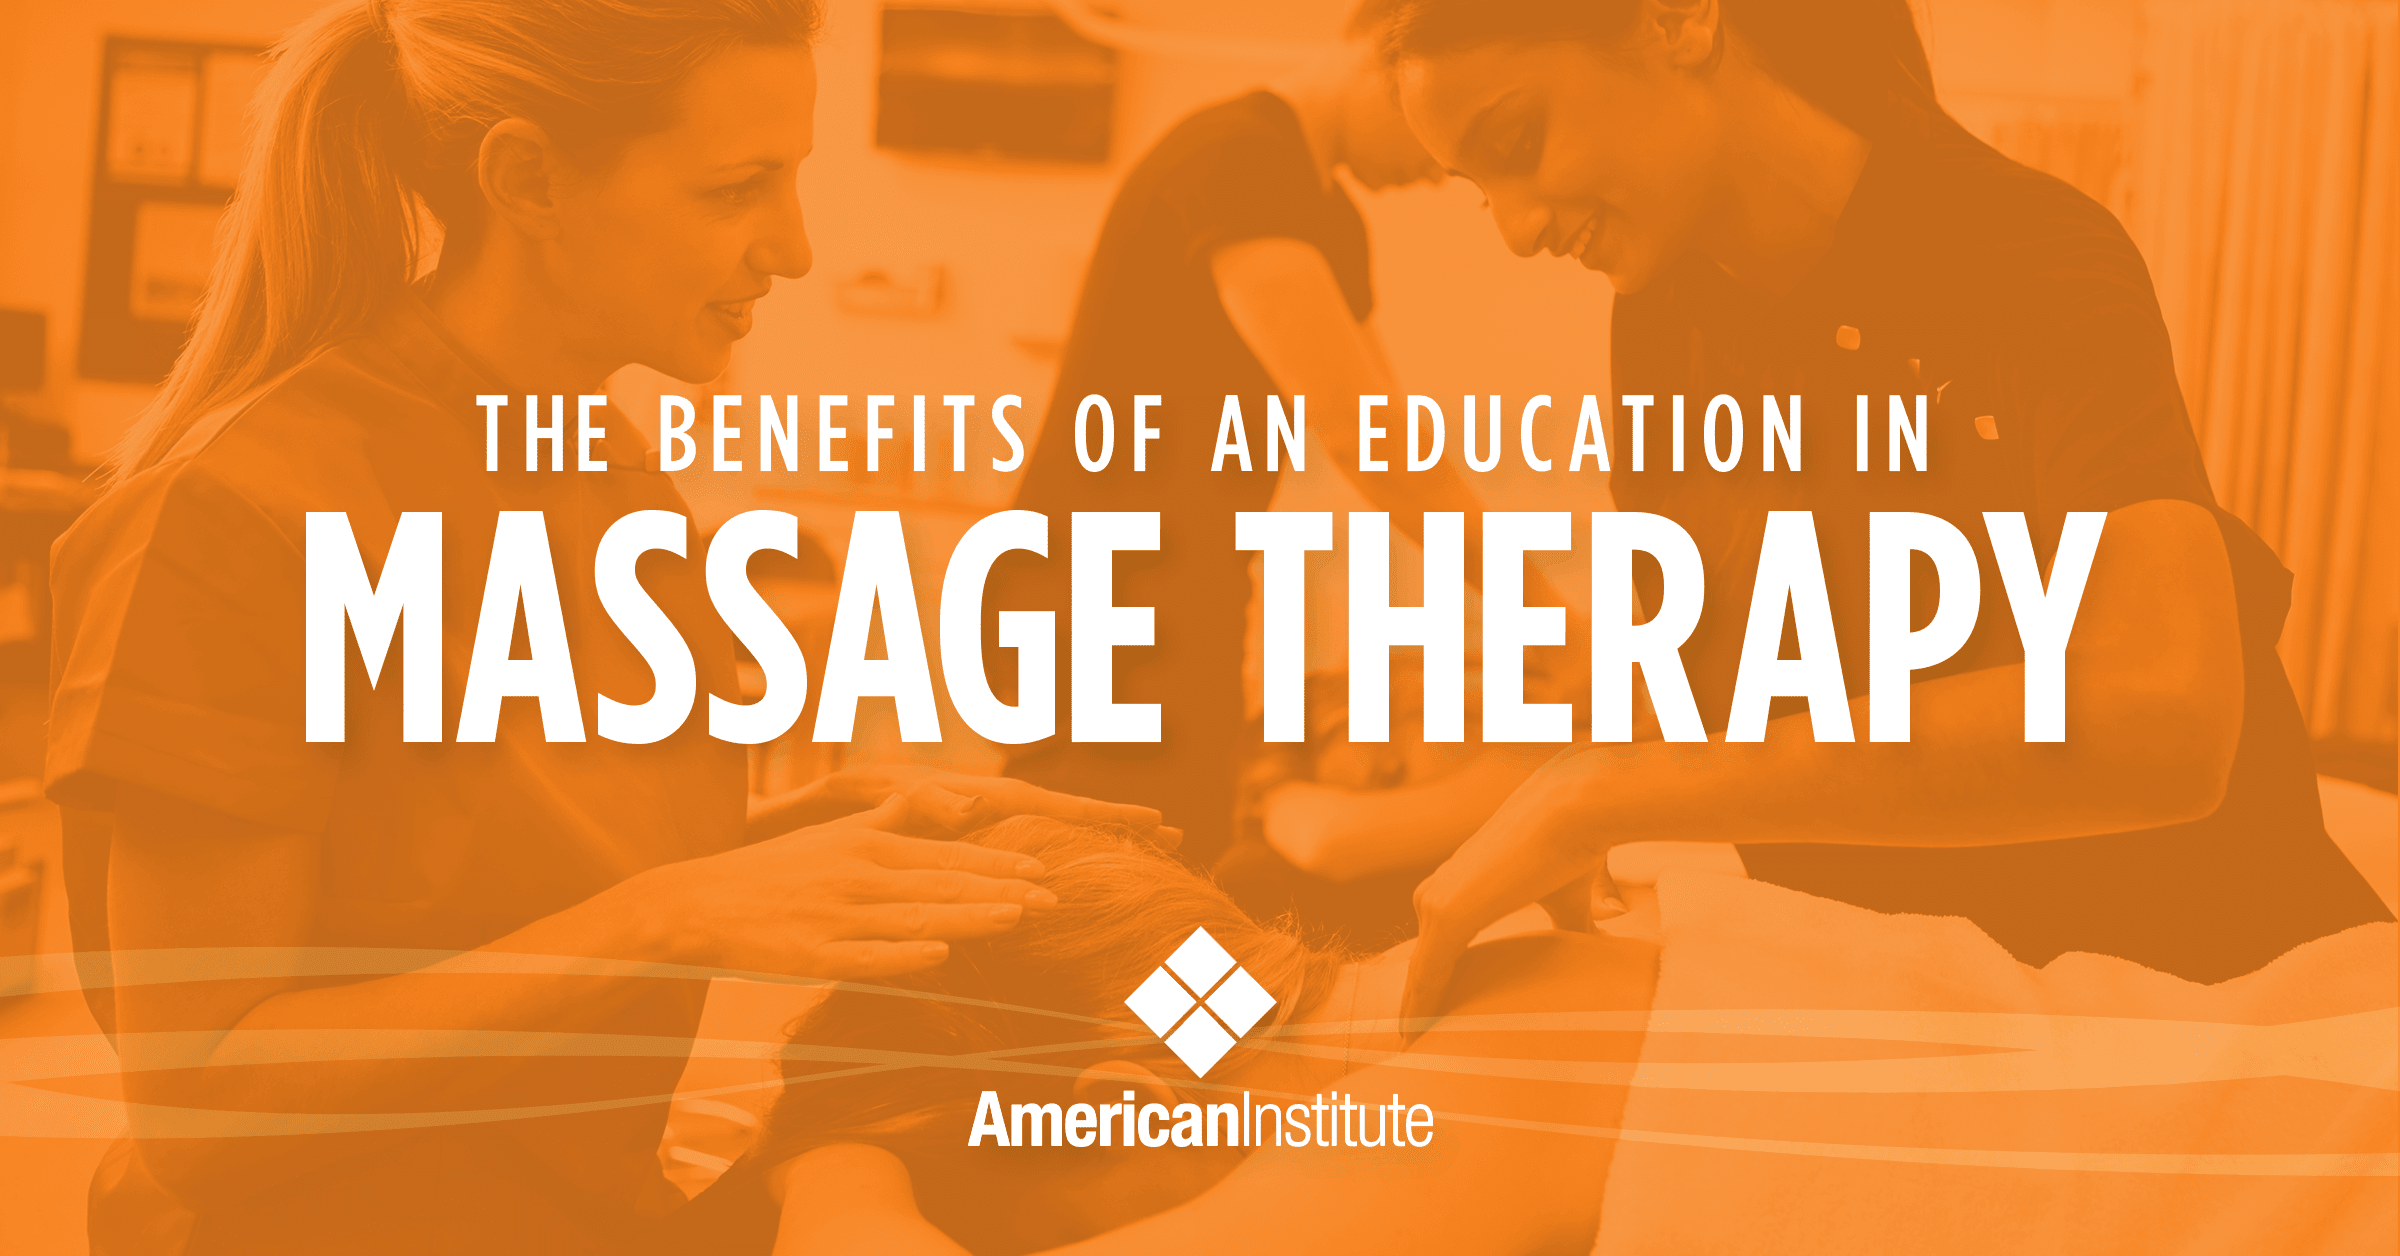 The Top 3 Benefits of a Massage Therapy Education